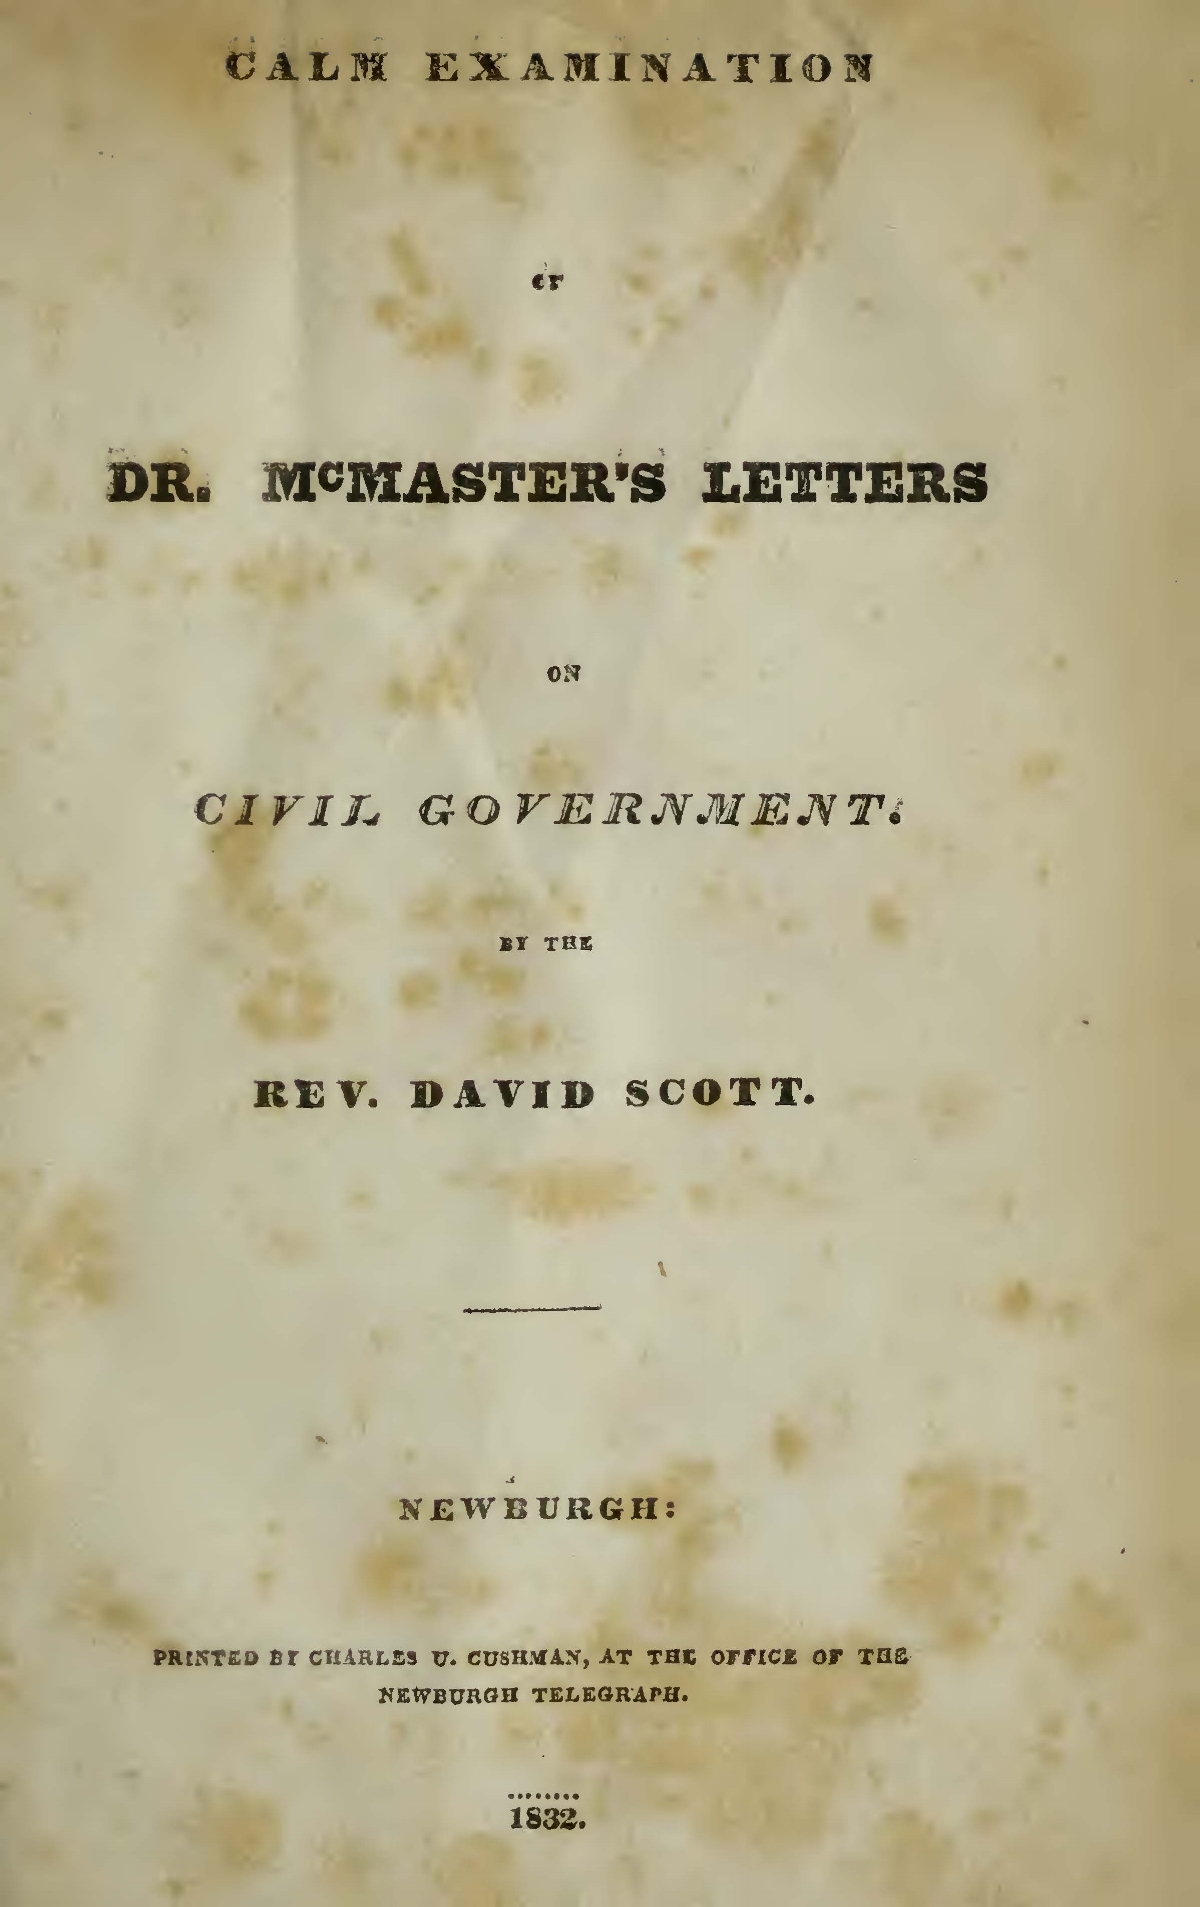 Scott, David, Calm Examination of Dr. McMaster's Letters on Civil Government Title Page.jpg